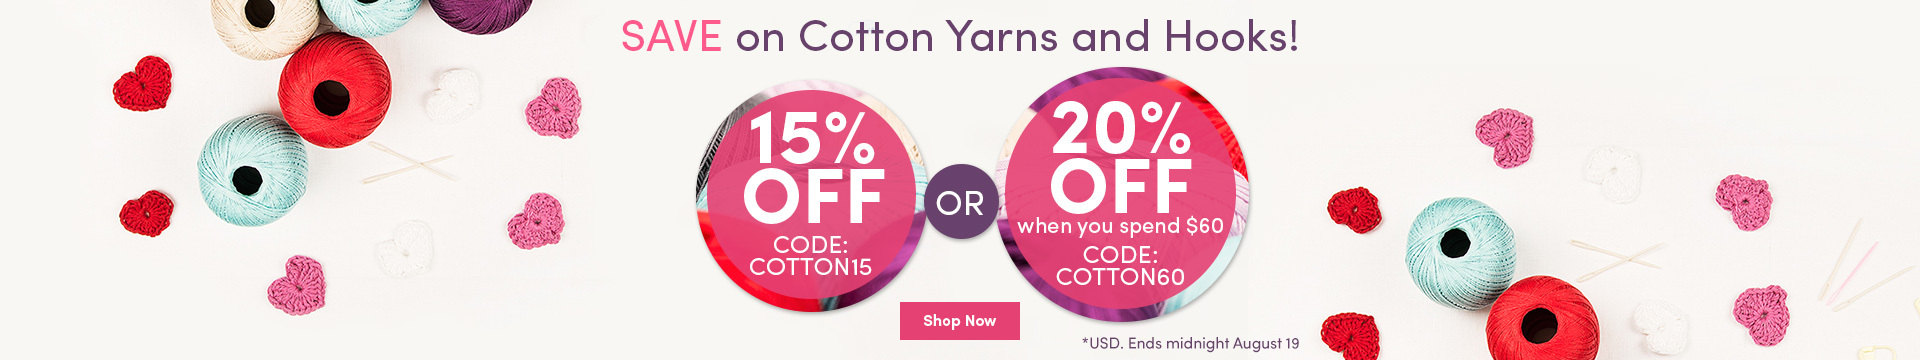 LC Marketing - 15 or 20% off cotton yarns and hooks - Aug 2017 NA